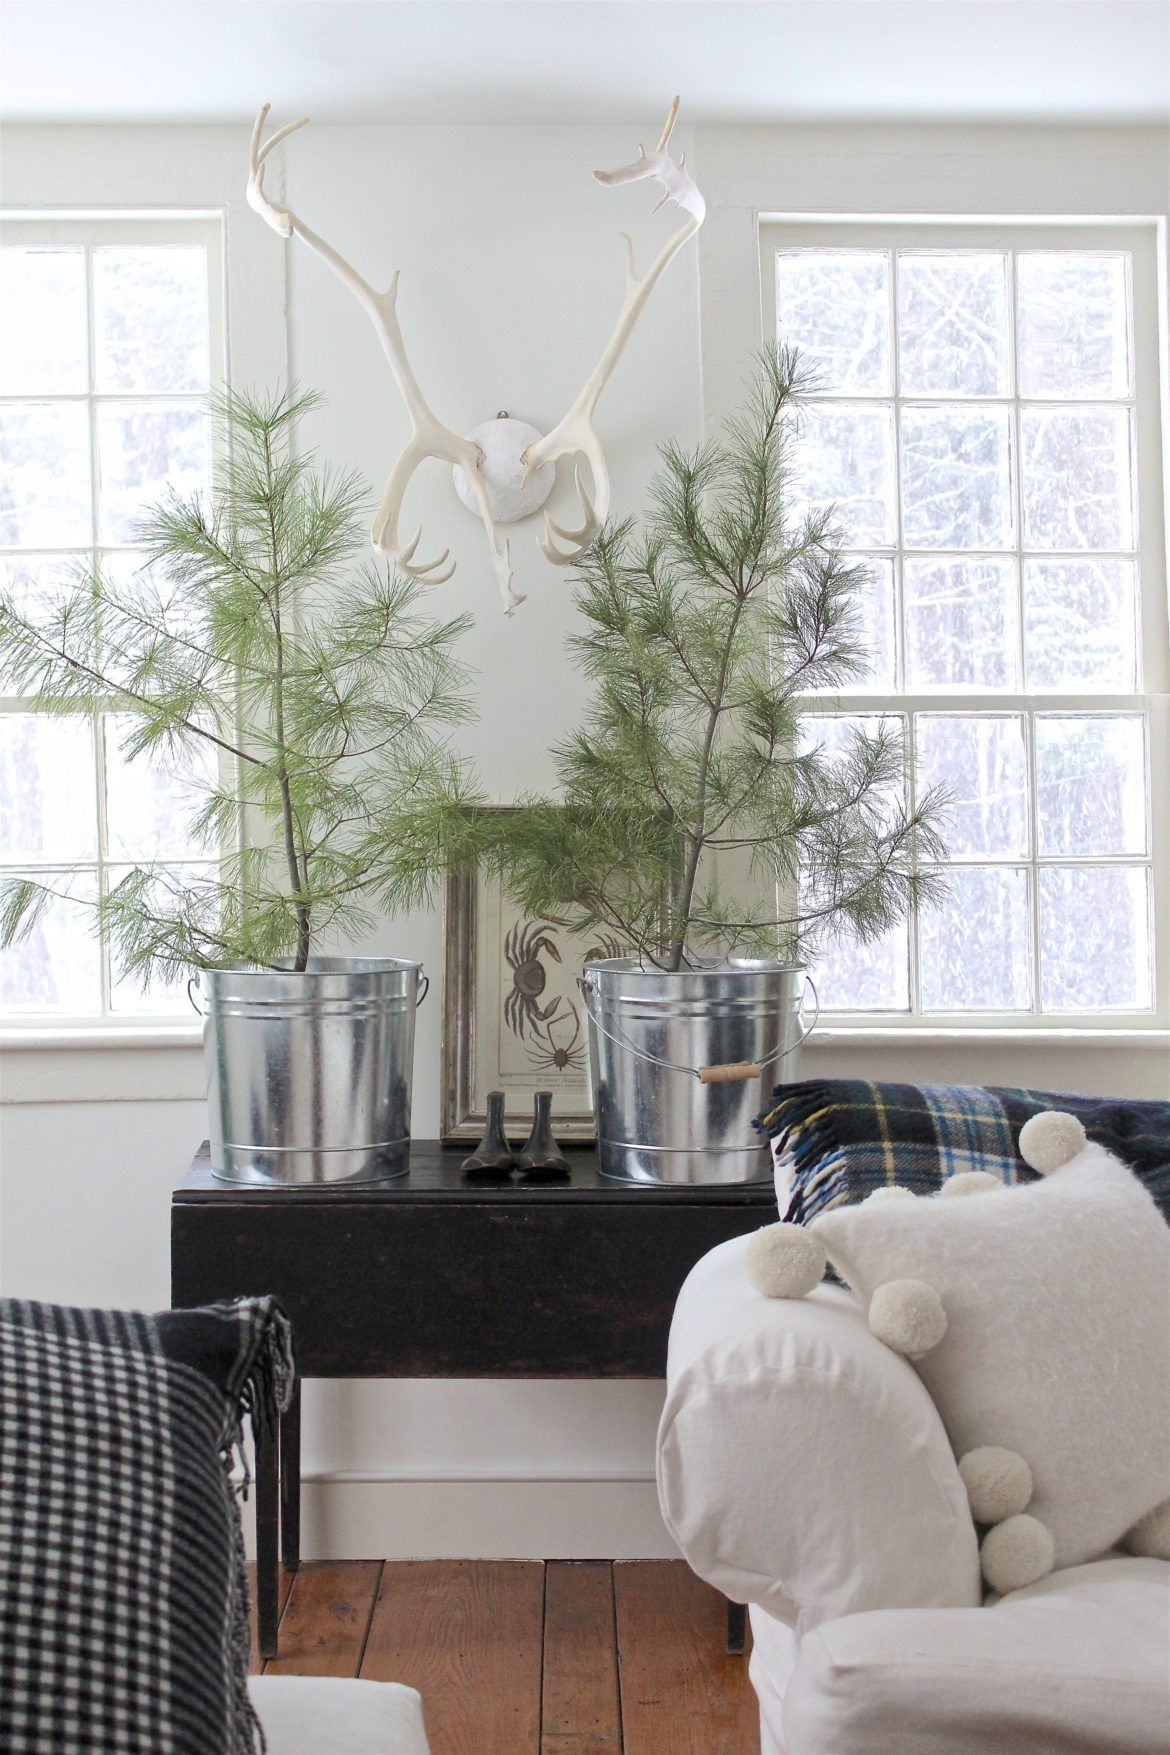 There are a thousand ways to put Country House style into your life – it comes down to the details. All those thoughtful littles add up to One. Great. Big!